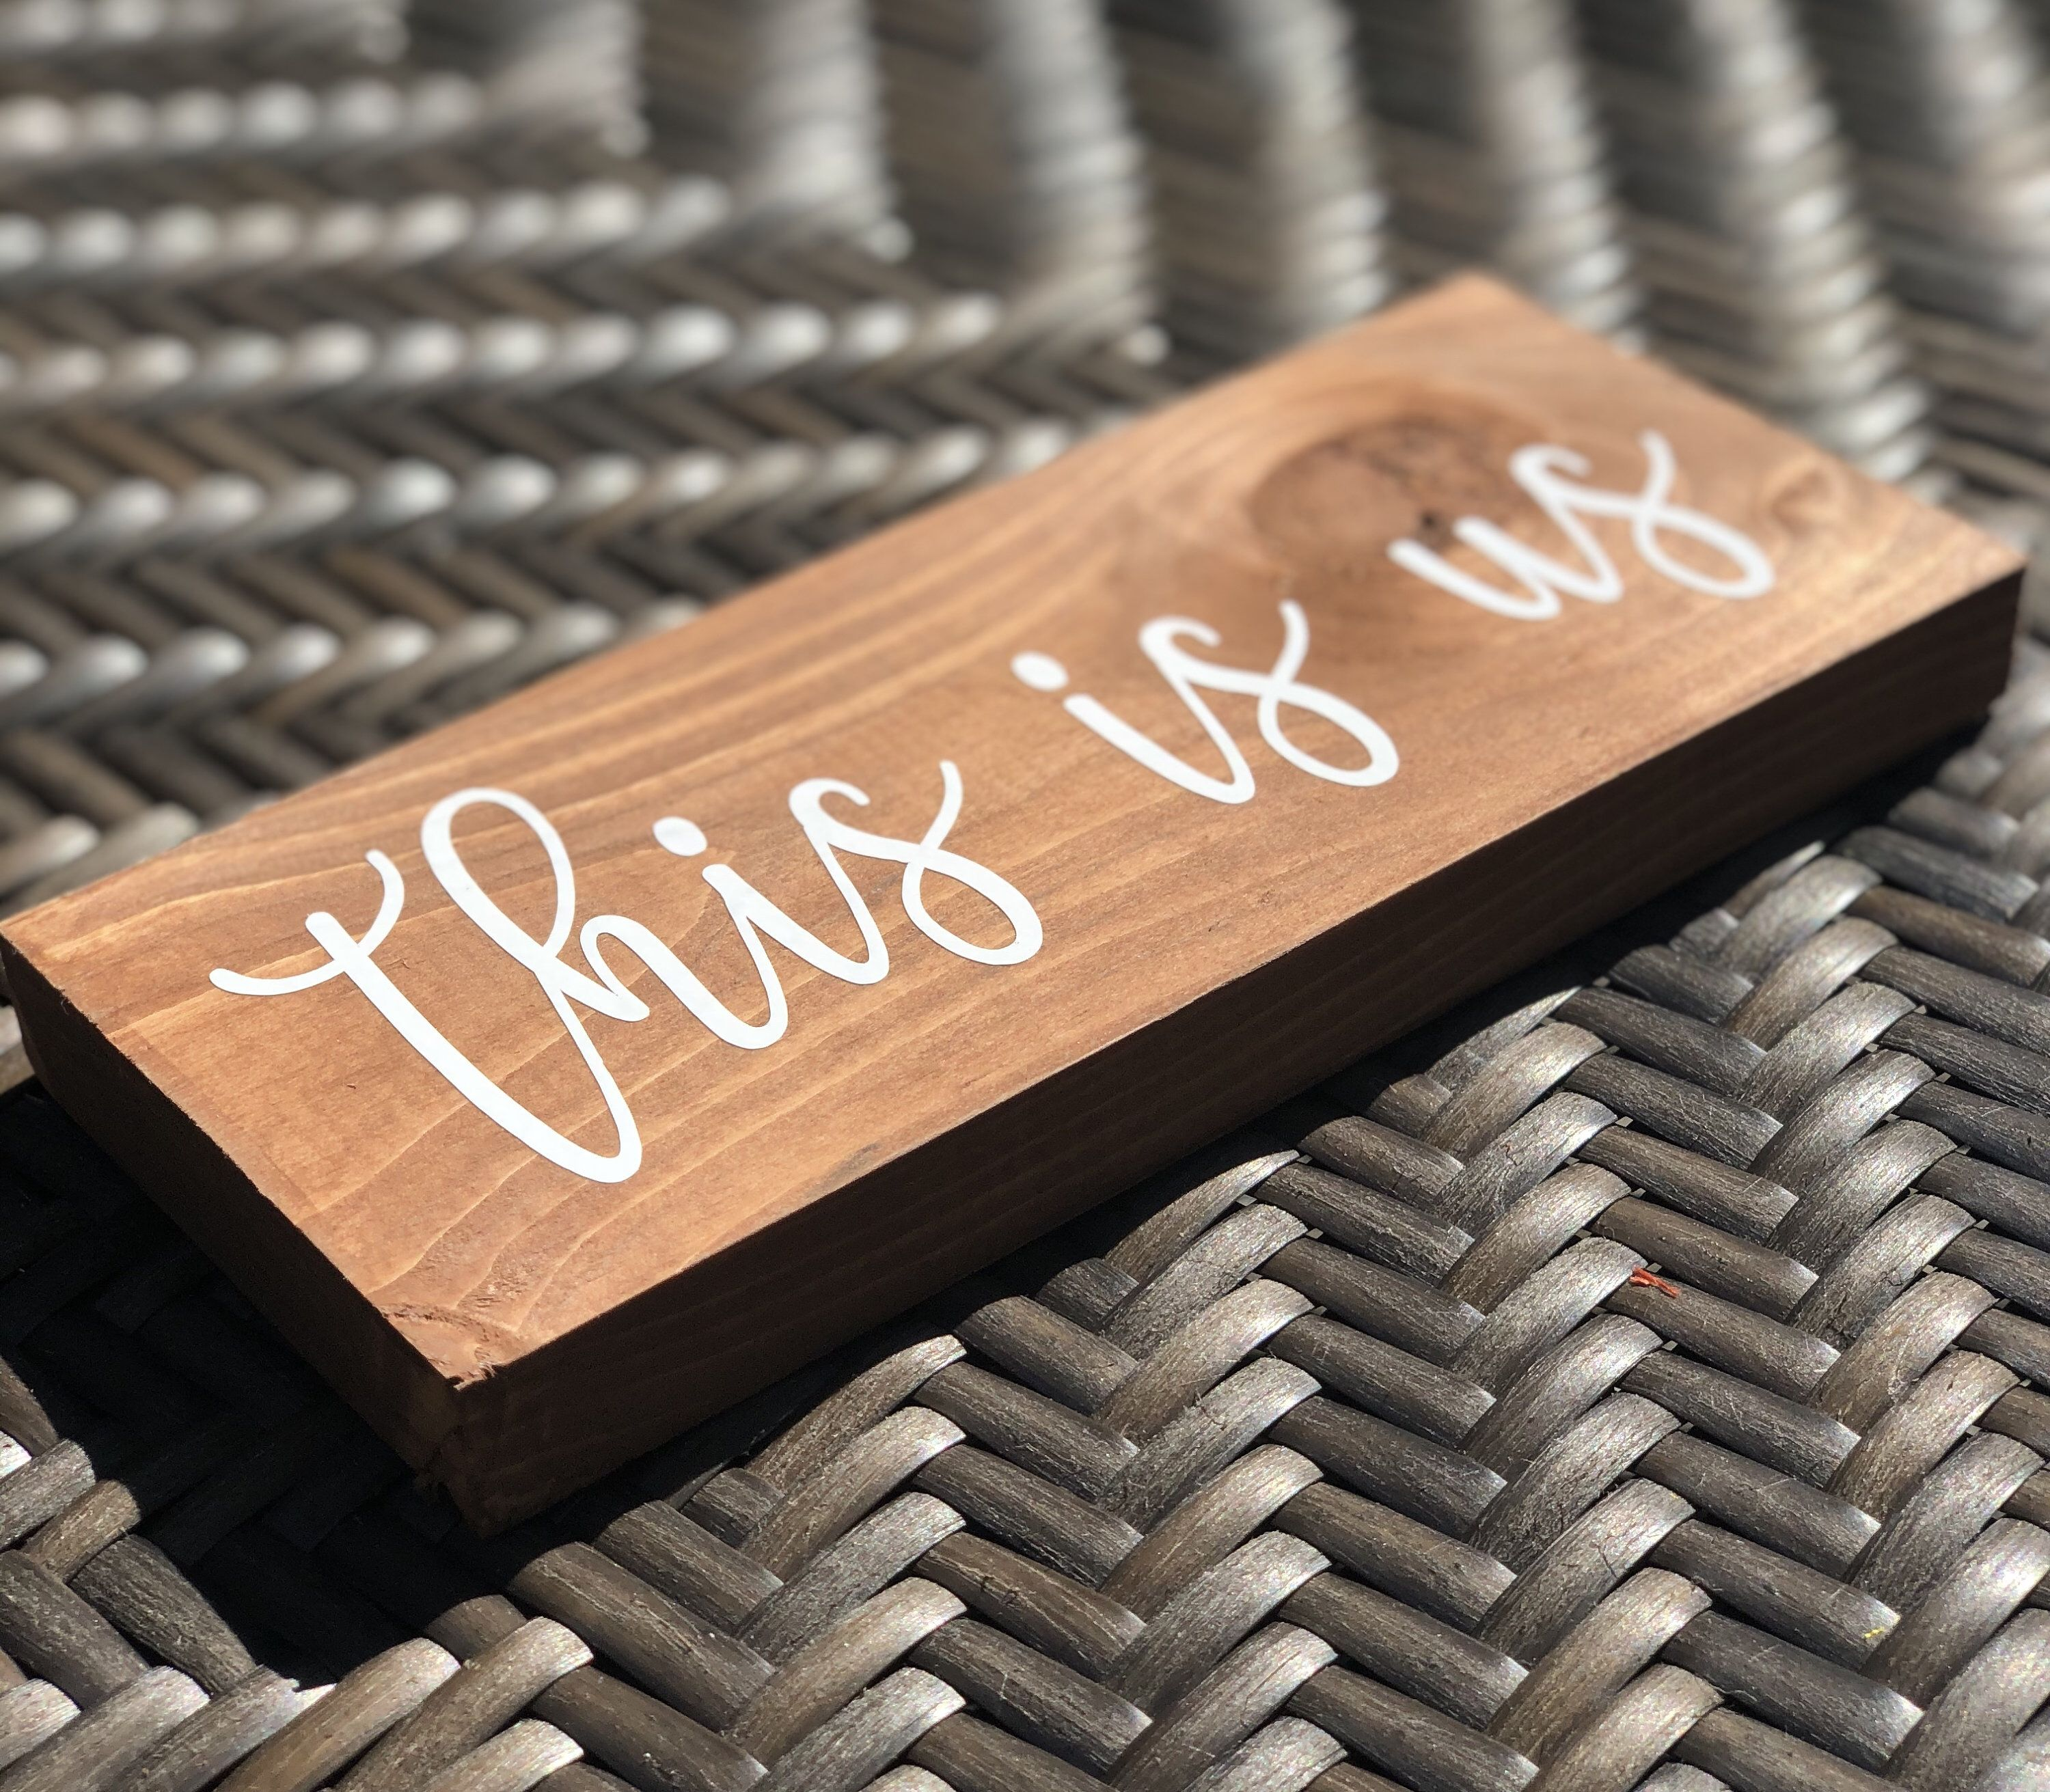 Mini shelf sitters this is us youre my person etsy in